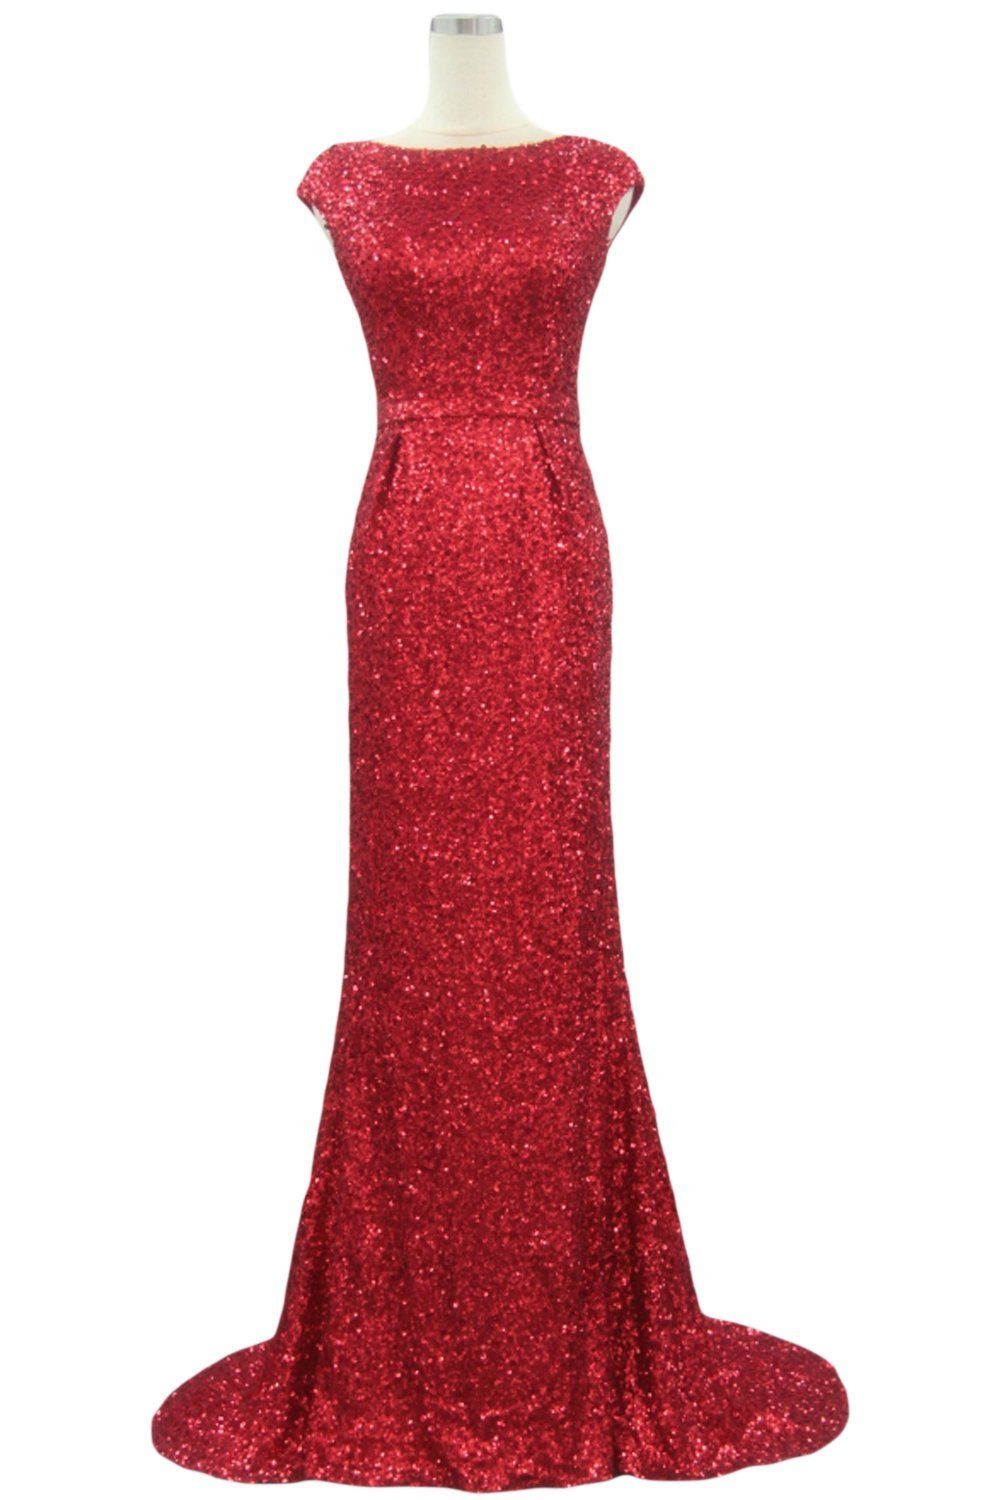 Sunvary Mermaid Sequin Evening Prom Gowns for Mother of the Bride ...